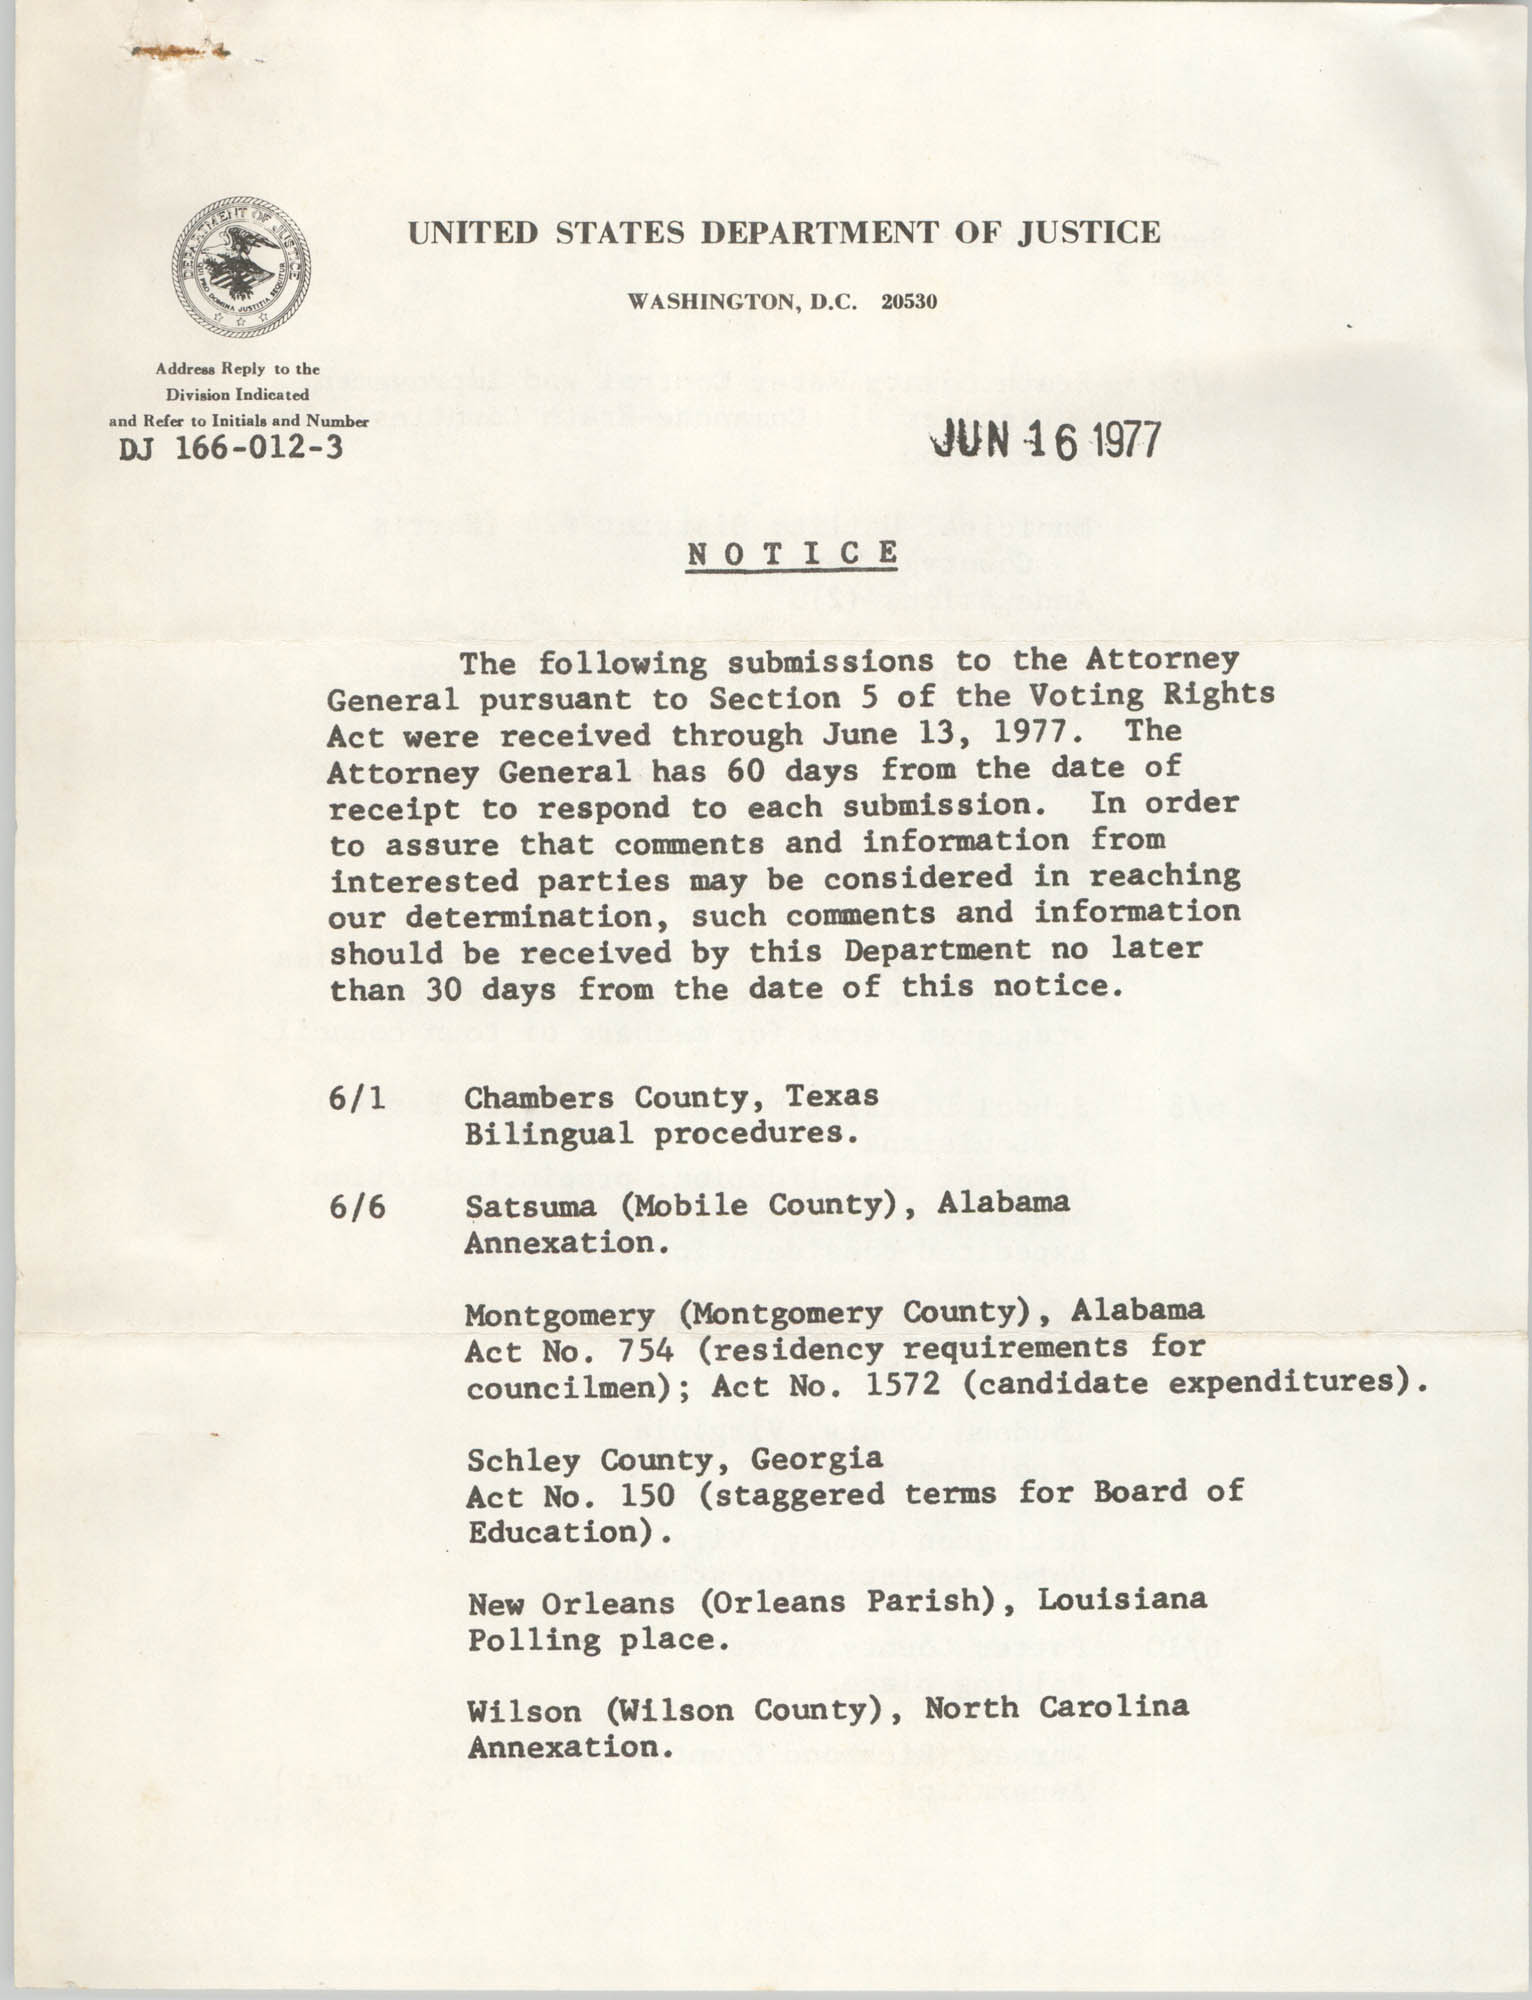 United States Department of Justice Notice, June 16, 1977